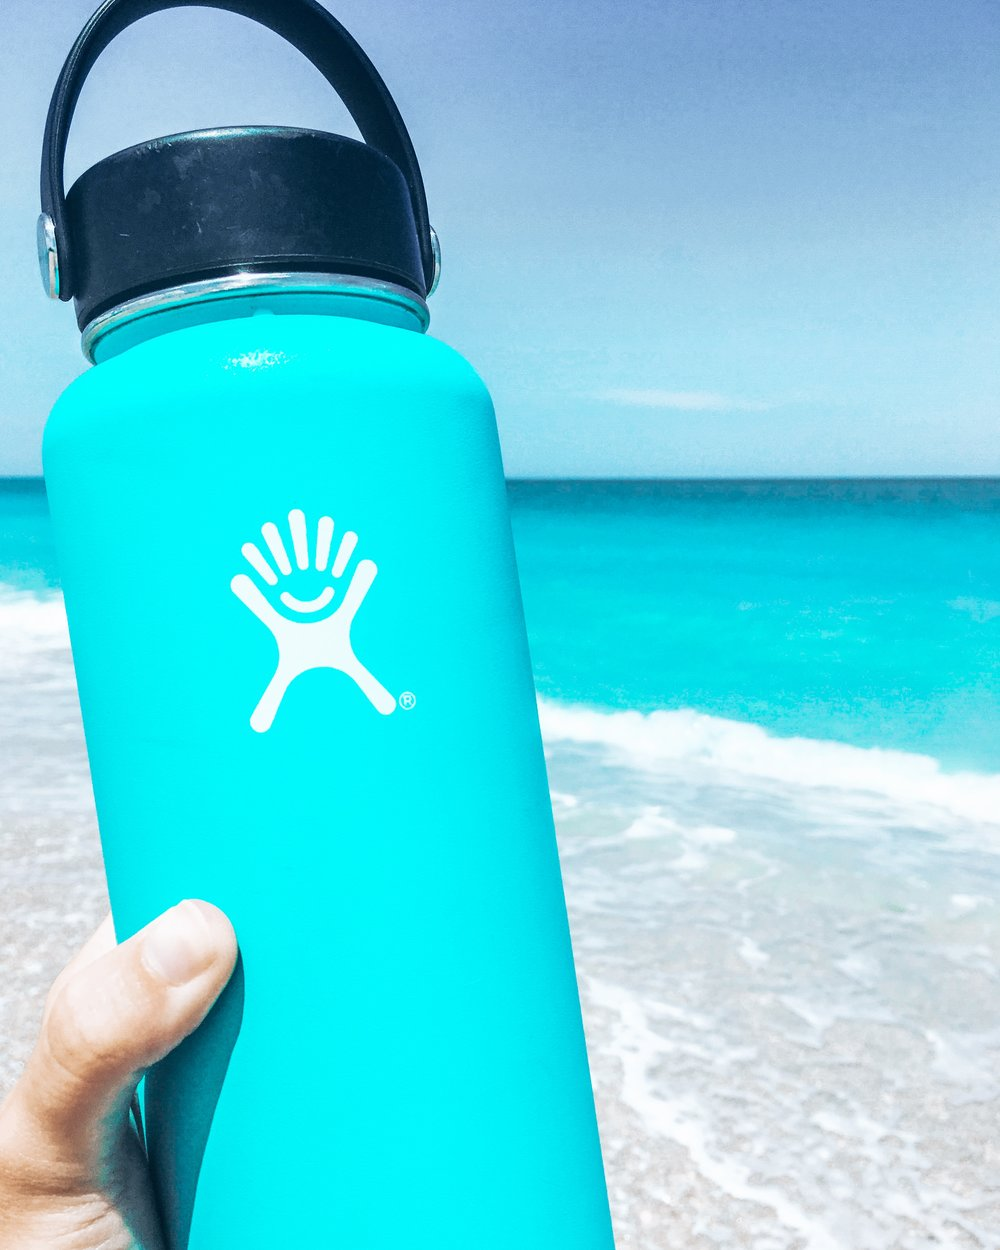 Bonus points if your water bottle matches the color of the ocean -